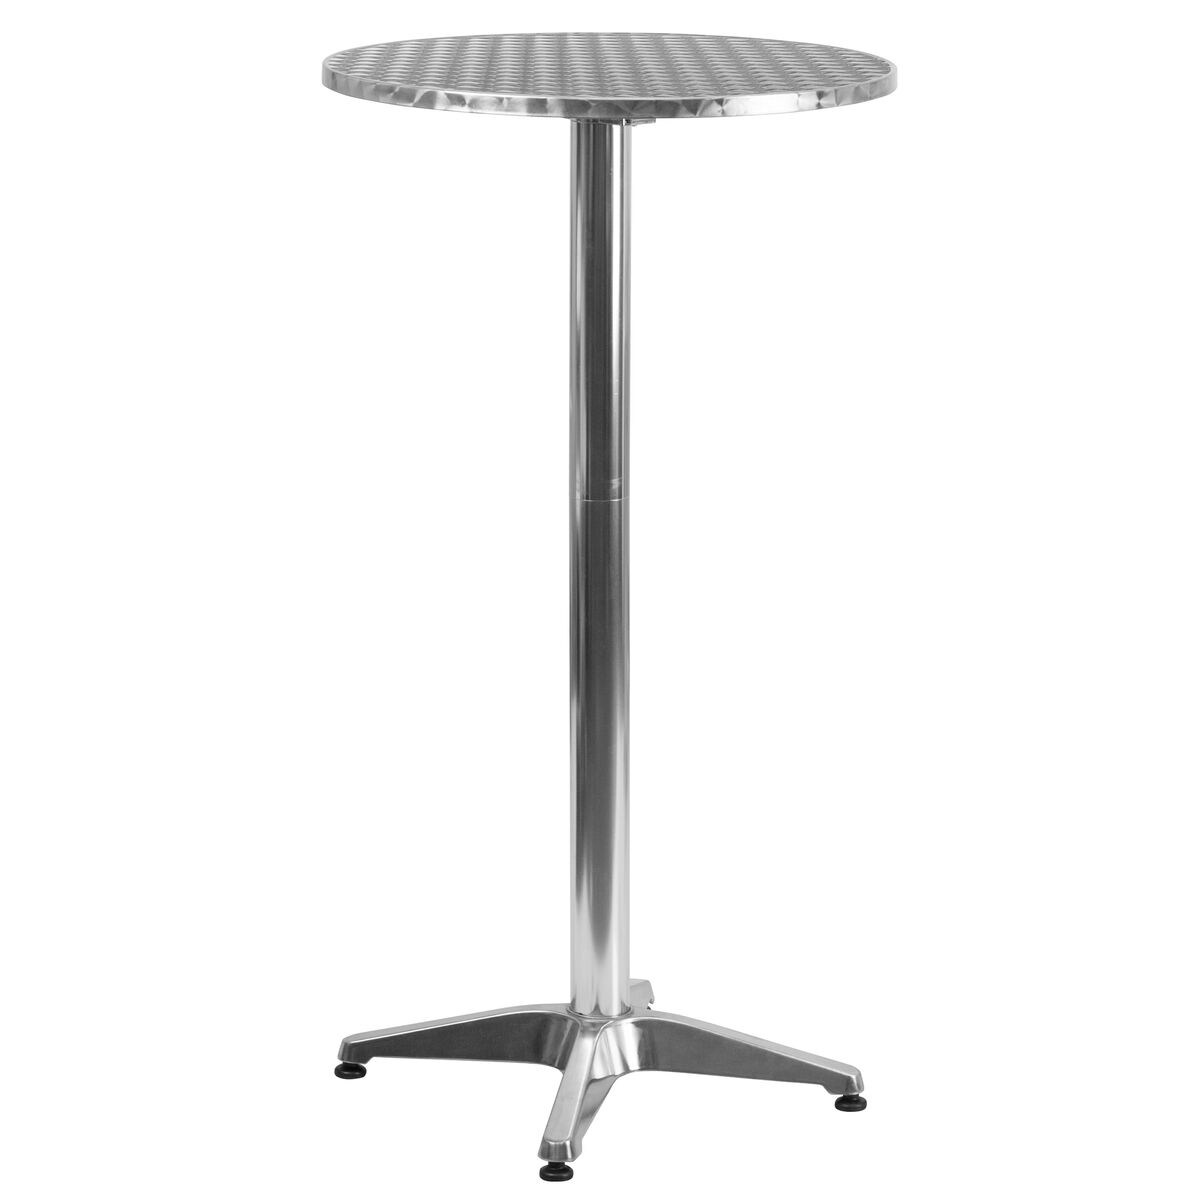 255rd aluminum fold bar table tlh 059a gg our 2325 round aluminum indoor outdoor folding bar height table with base is watchthetrailerfo